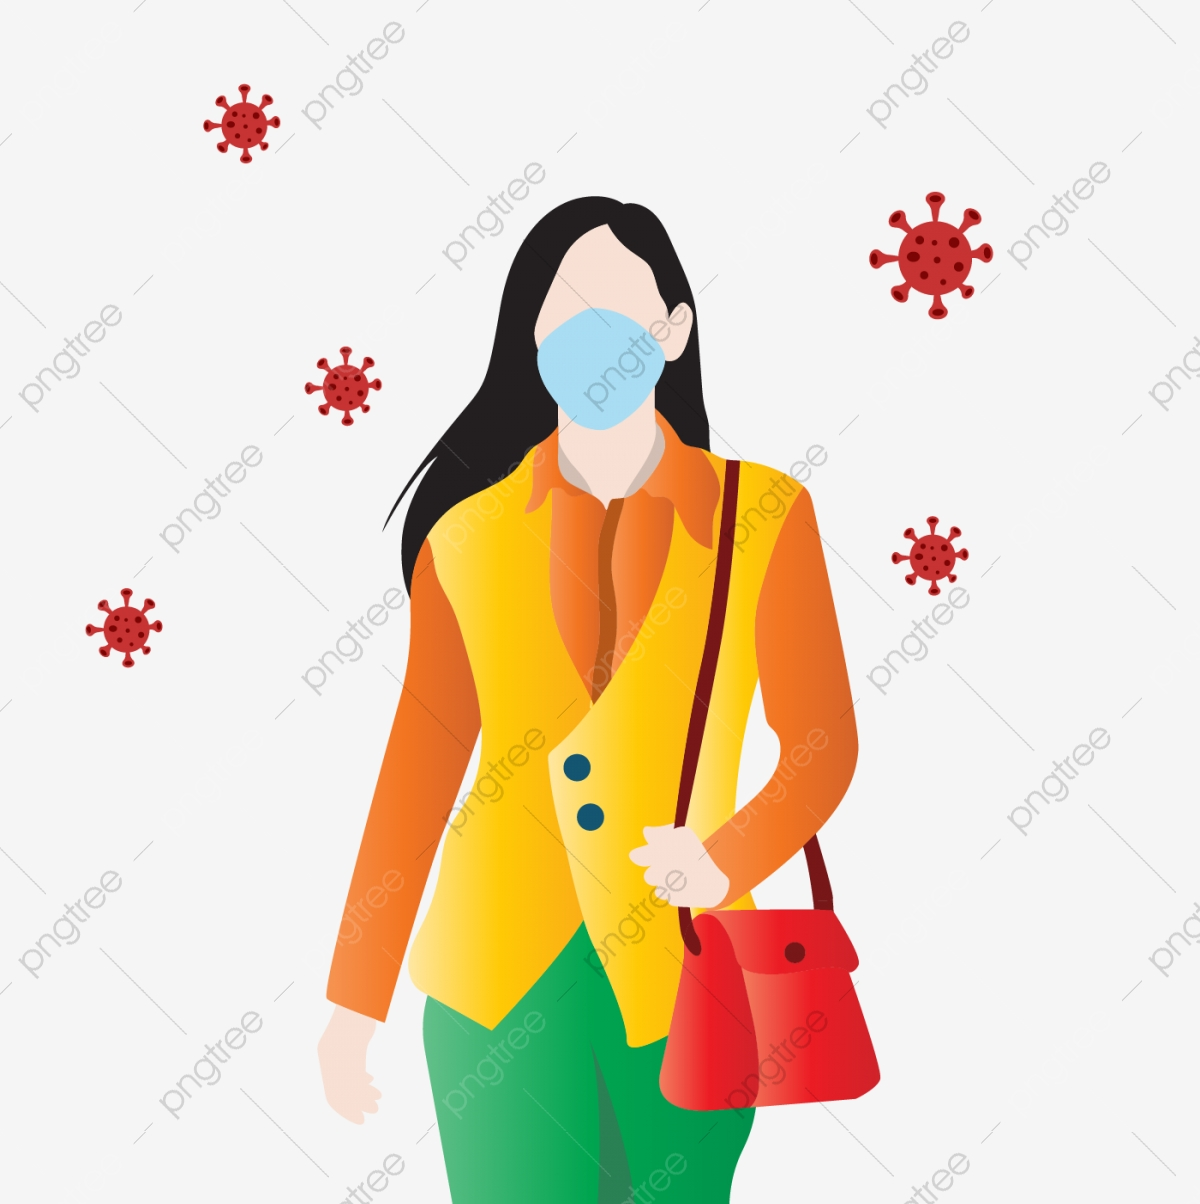 He Png Images Vector And Psd Files Free Download On Pngtree Png images and cliparts for web design. https pngtree com freepng the woman will go to work he wears an n95 mask 5344658 html